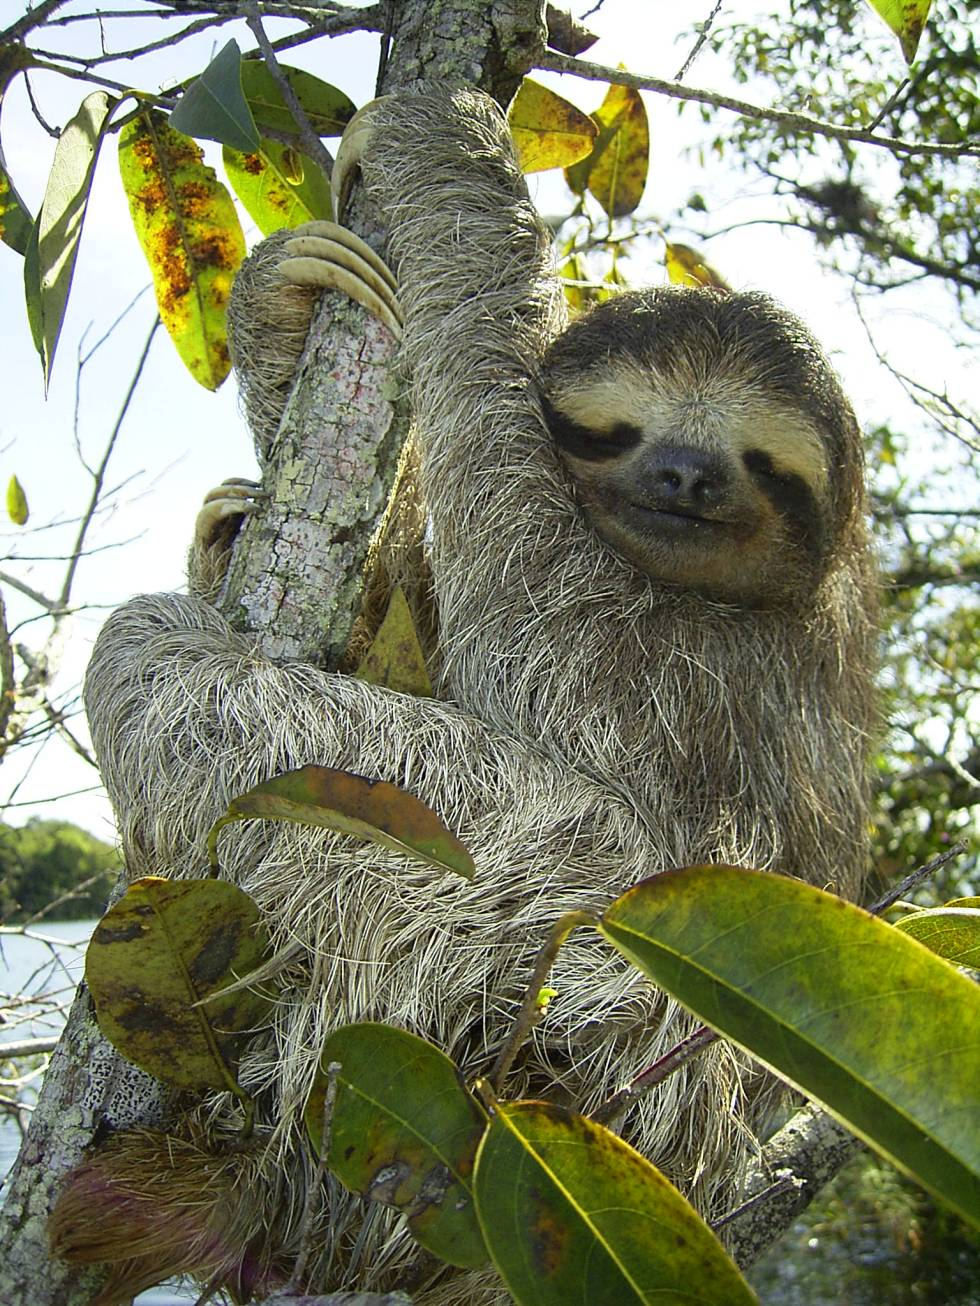 A three-toed sloth. (Credit: Wikimedia Commons/Stefan Laube)